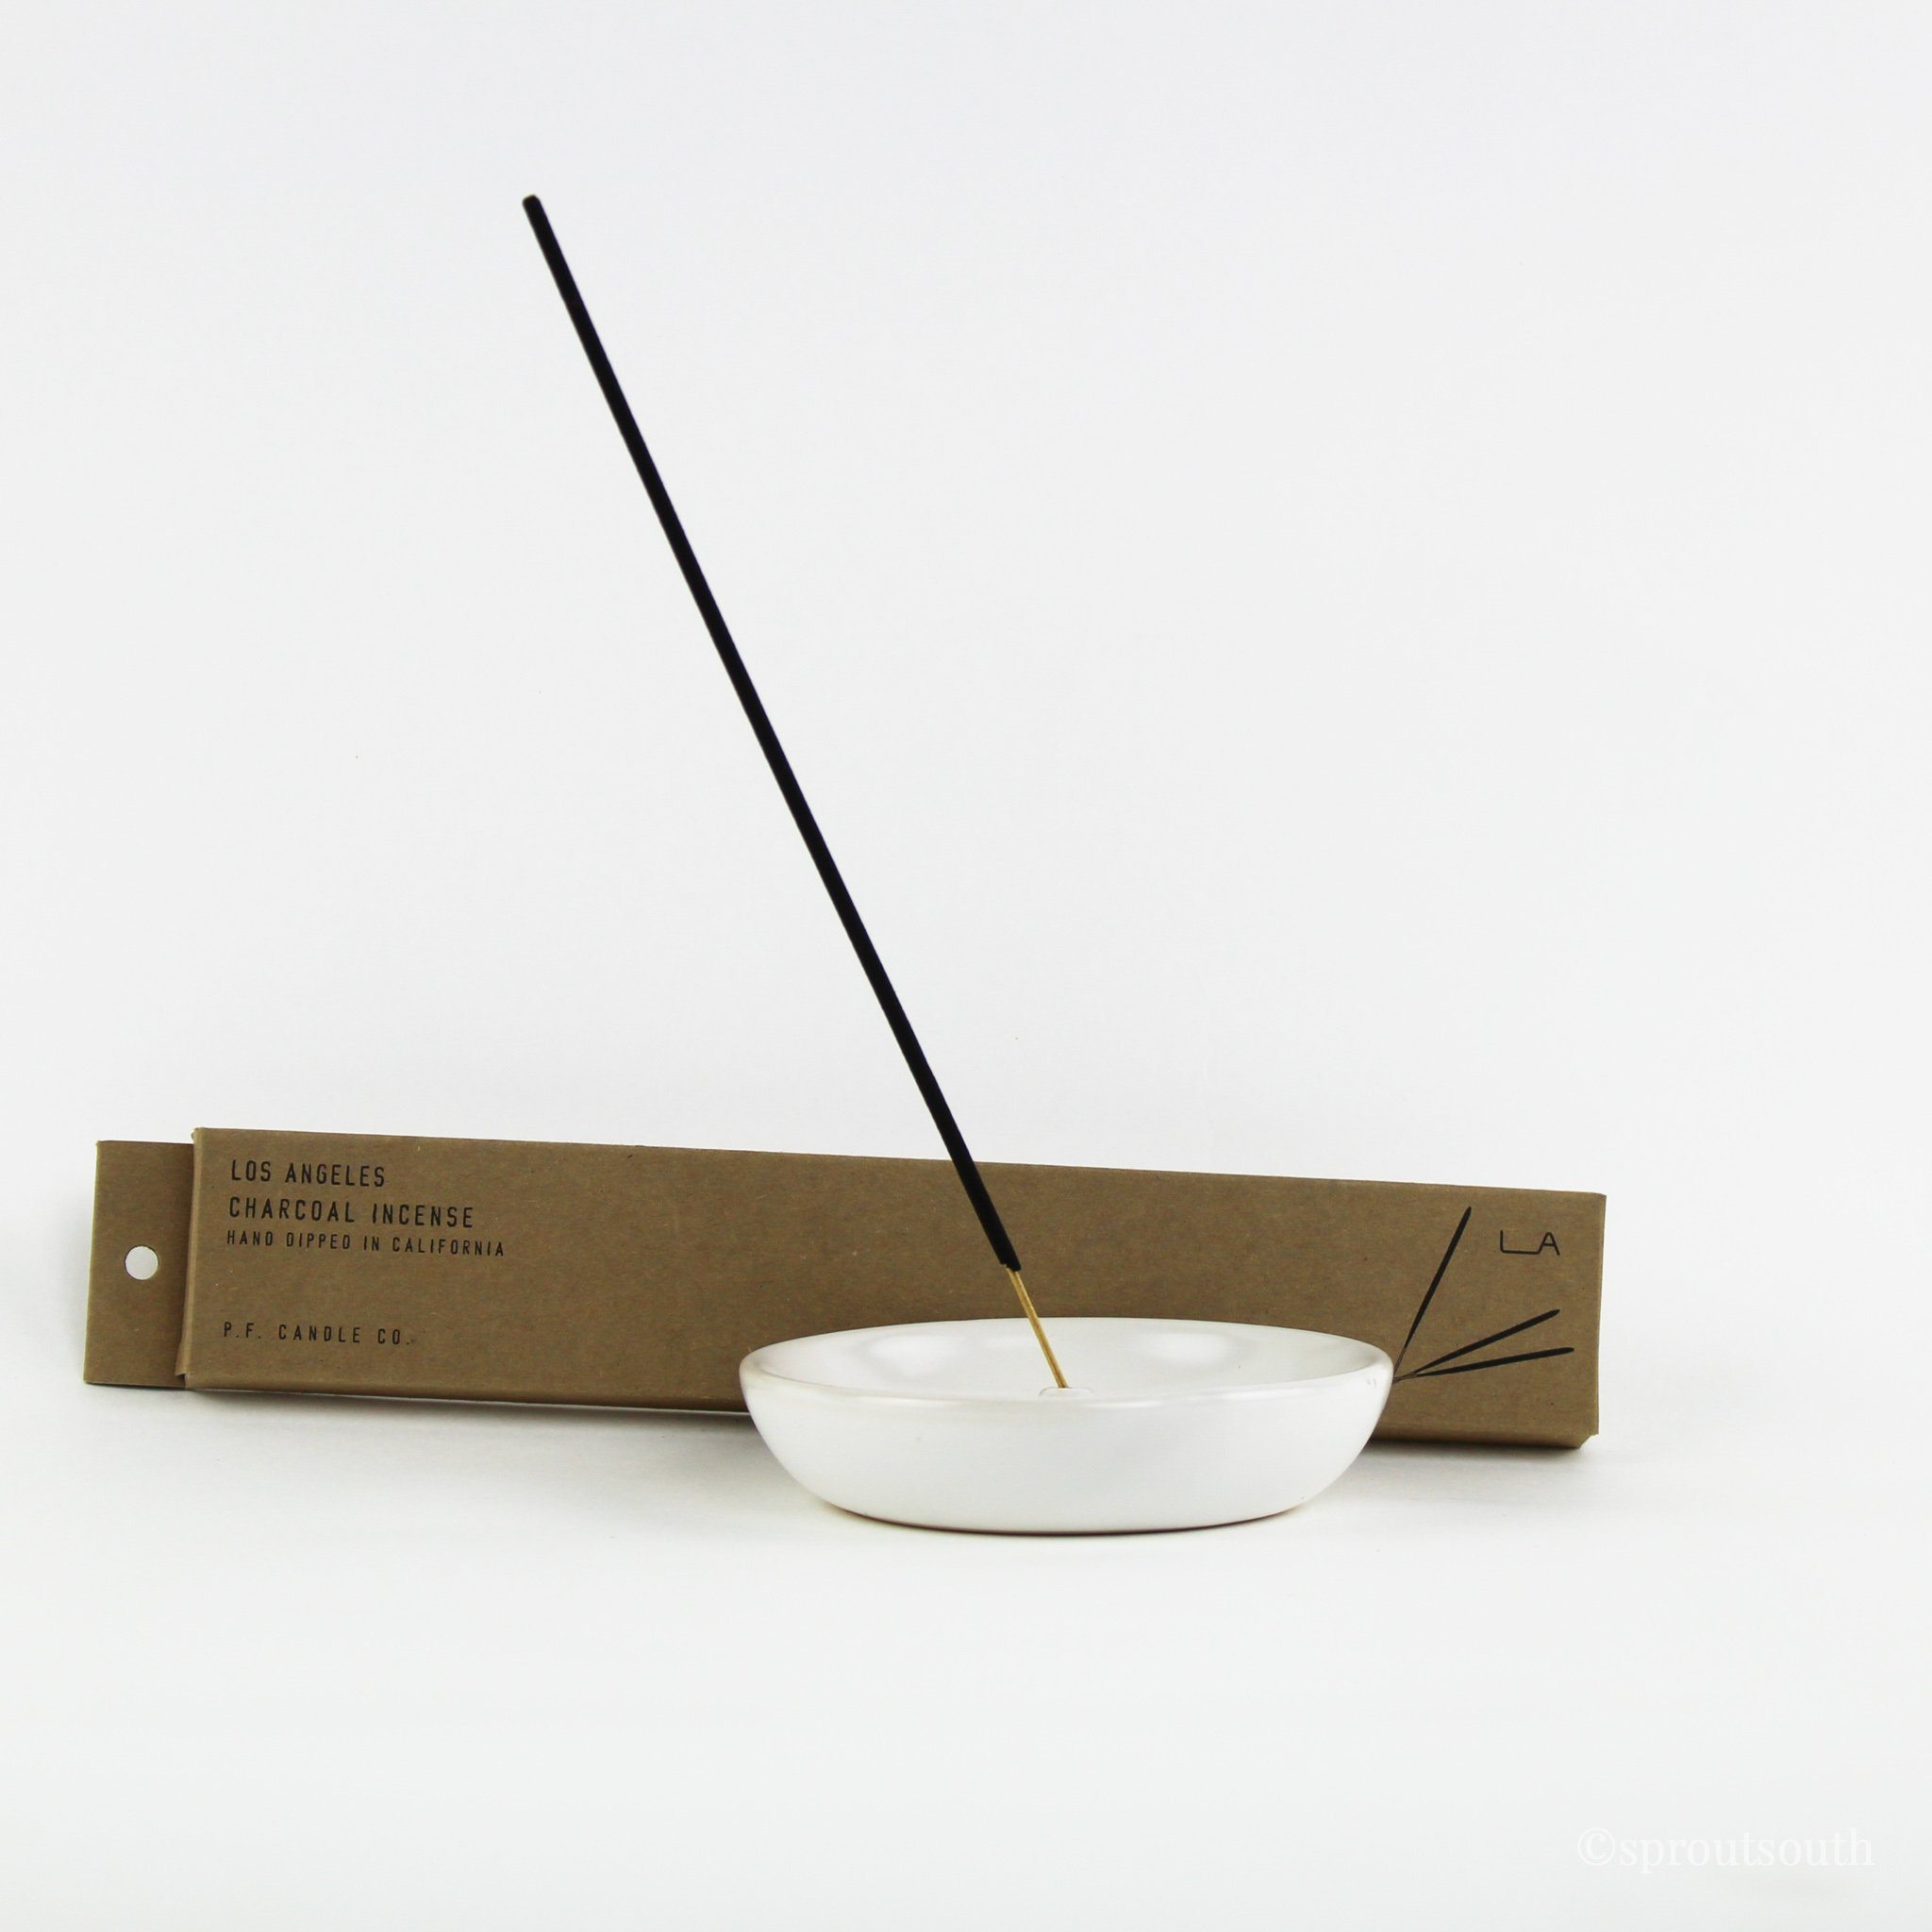 P.F. Candle Co. Incense Sticks-SproutSouth-Incense